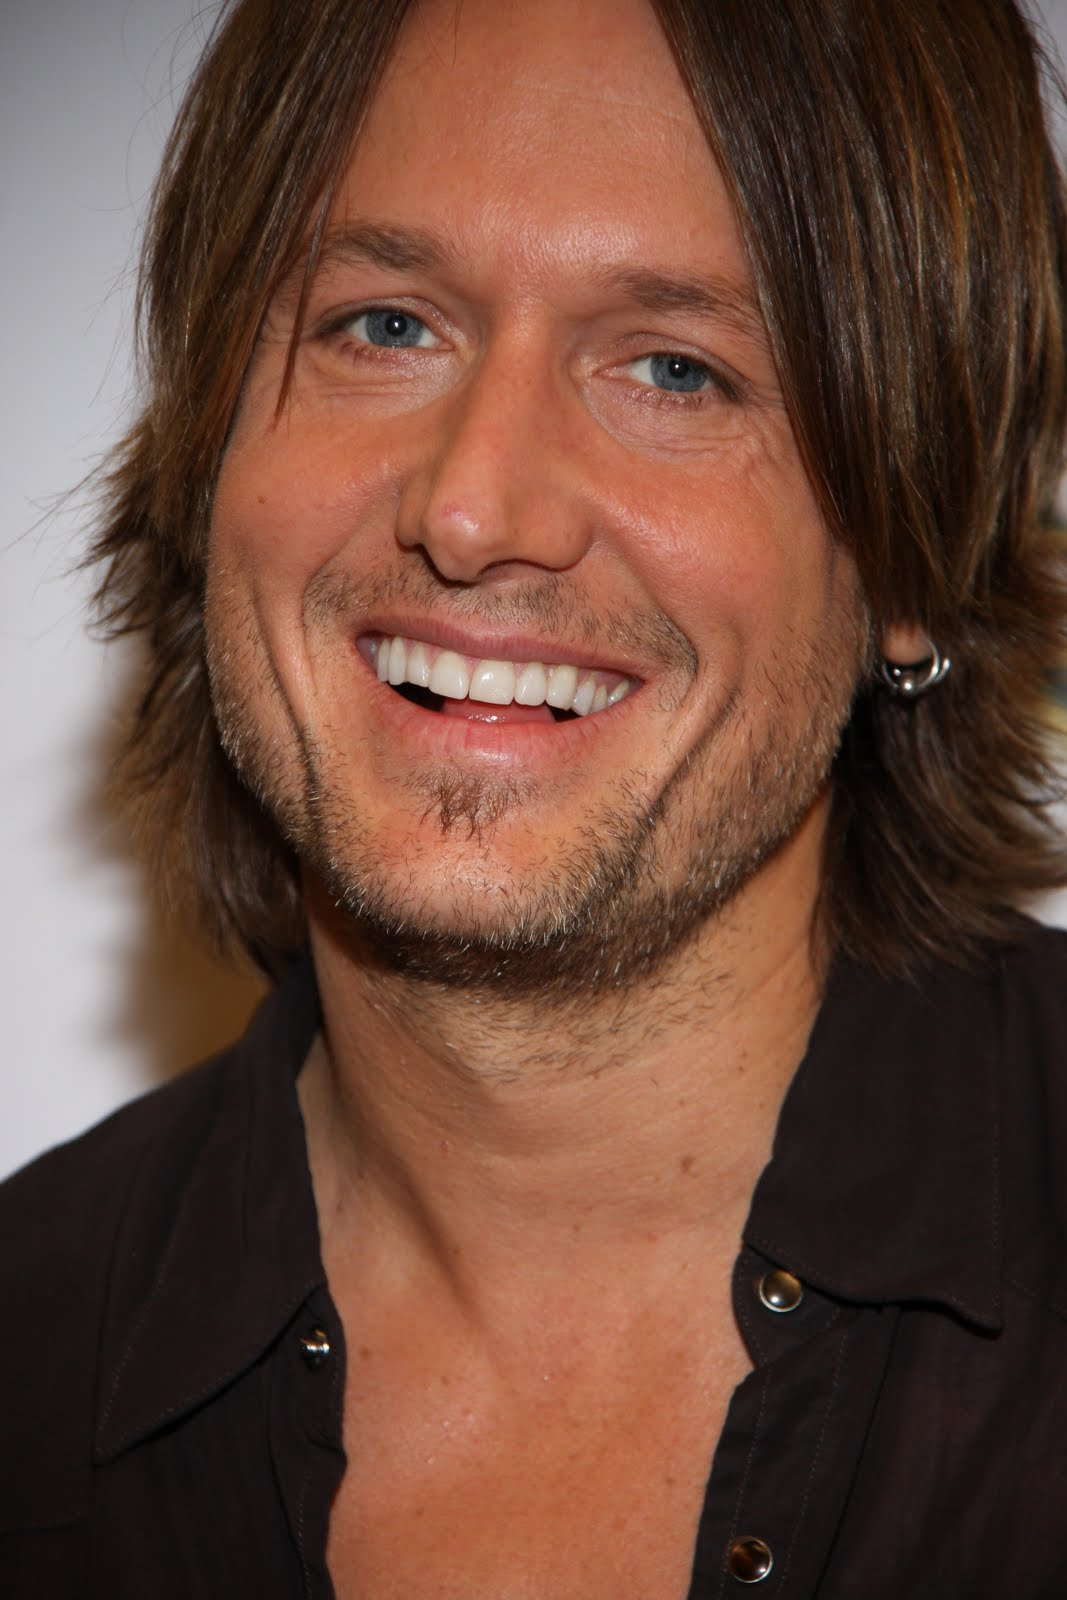 Keith Urban - Keith Urban Photo (27019121) - Fanpop